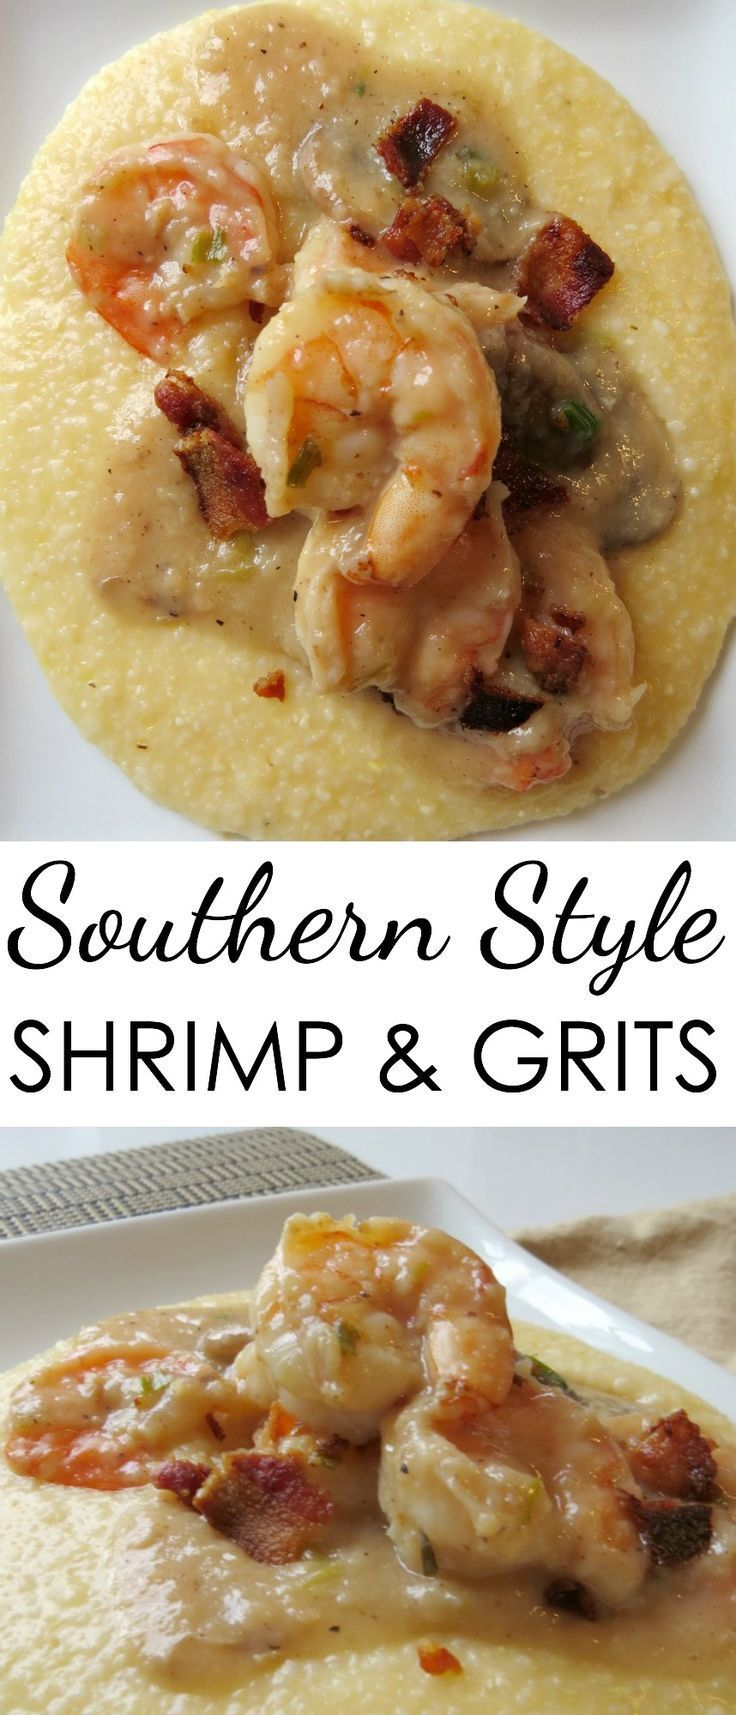 Here's an easy southern style shrimp and grits recipe that's hearty and delicious.